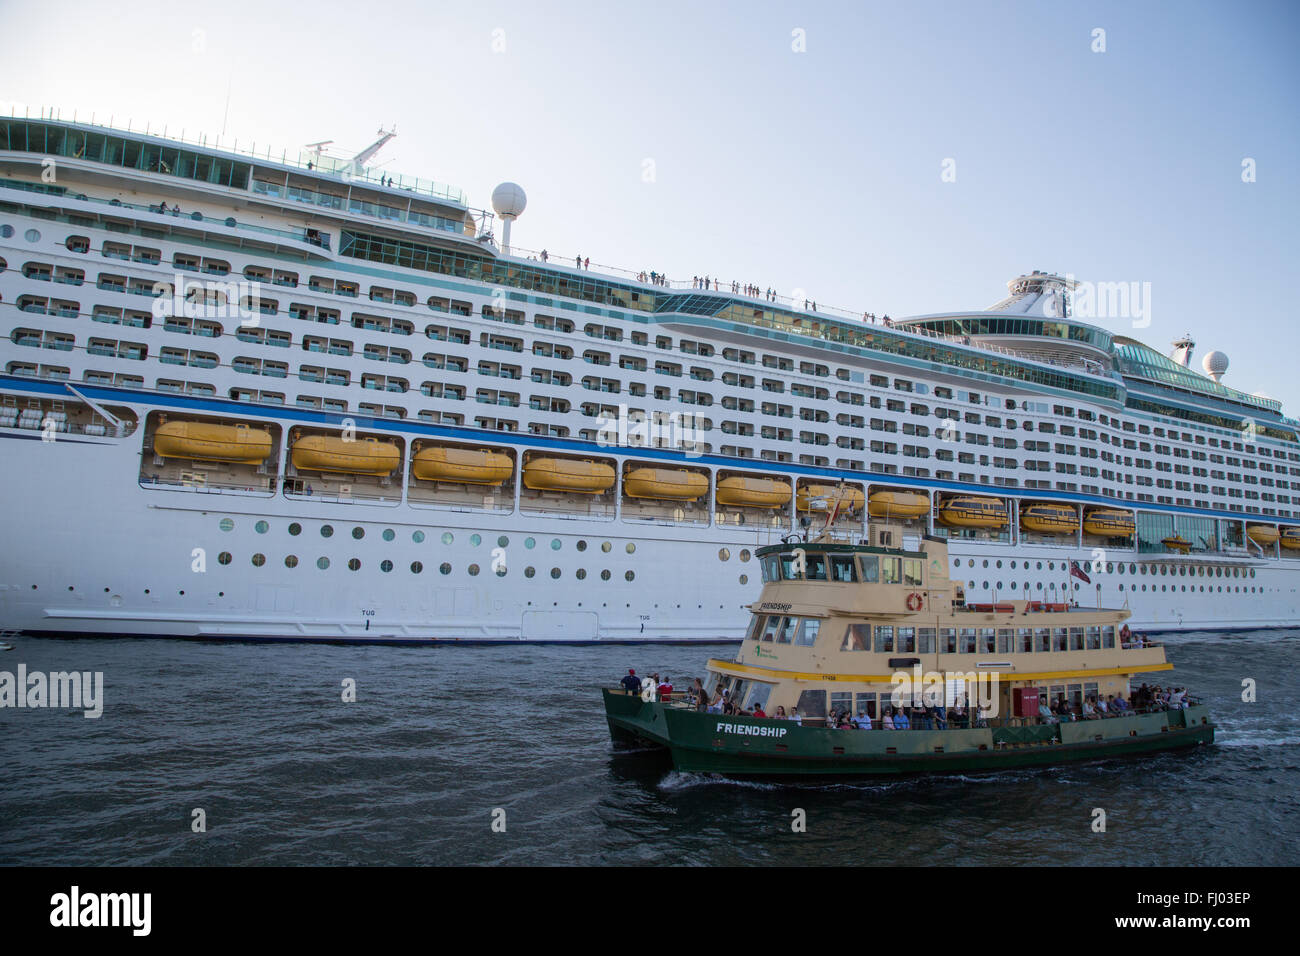 The Royal Caribbean International cruise ship Voyager of the Seas